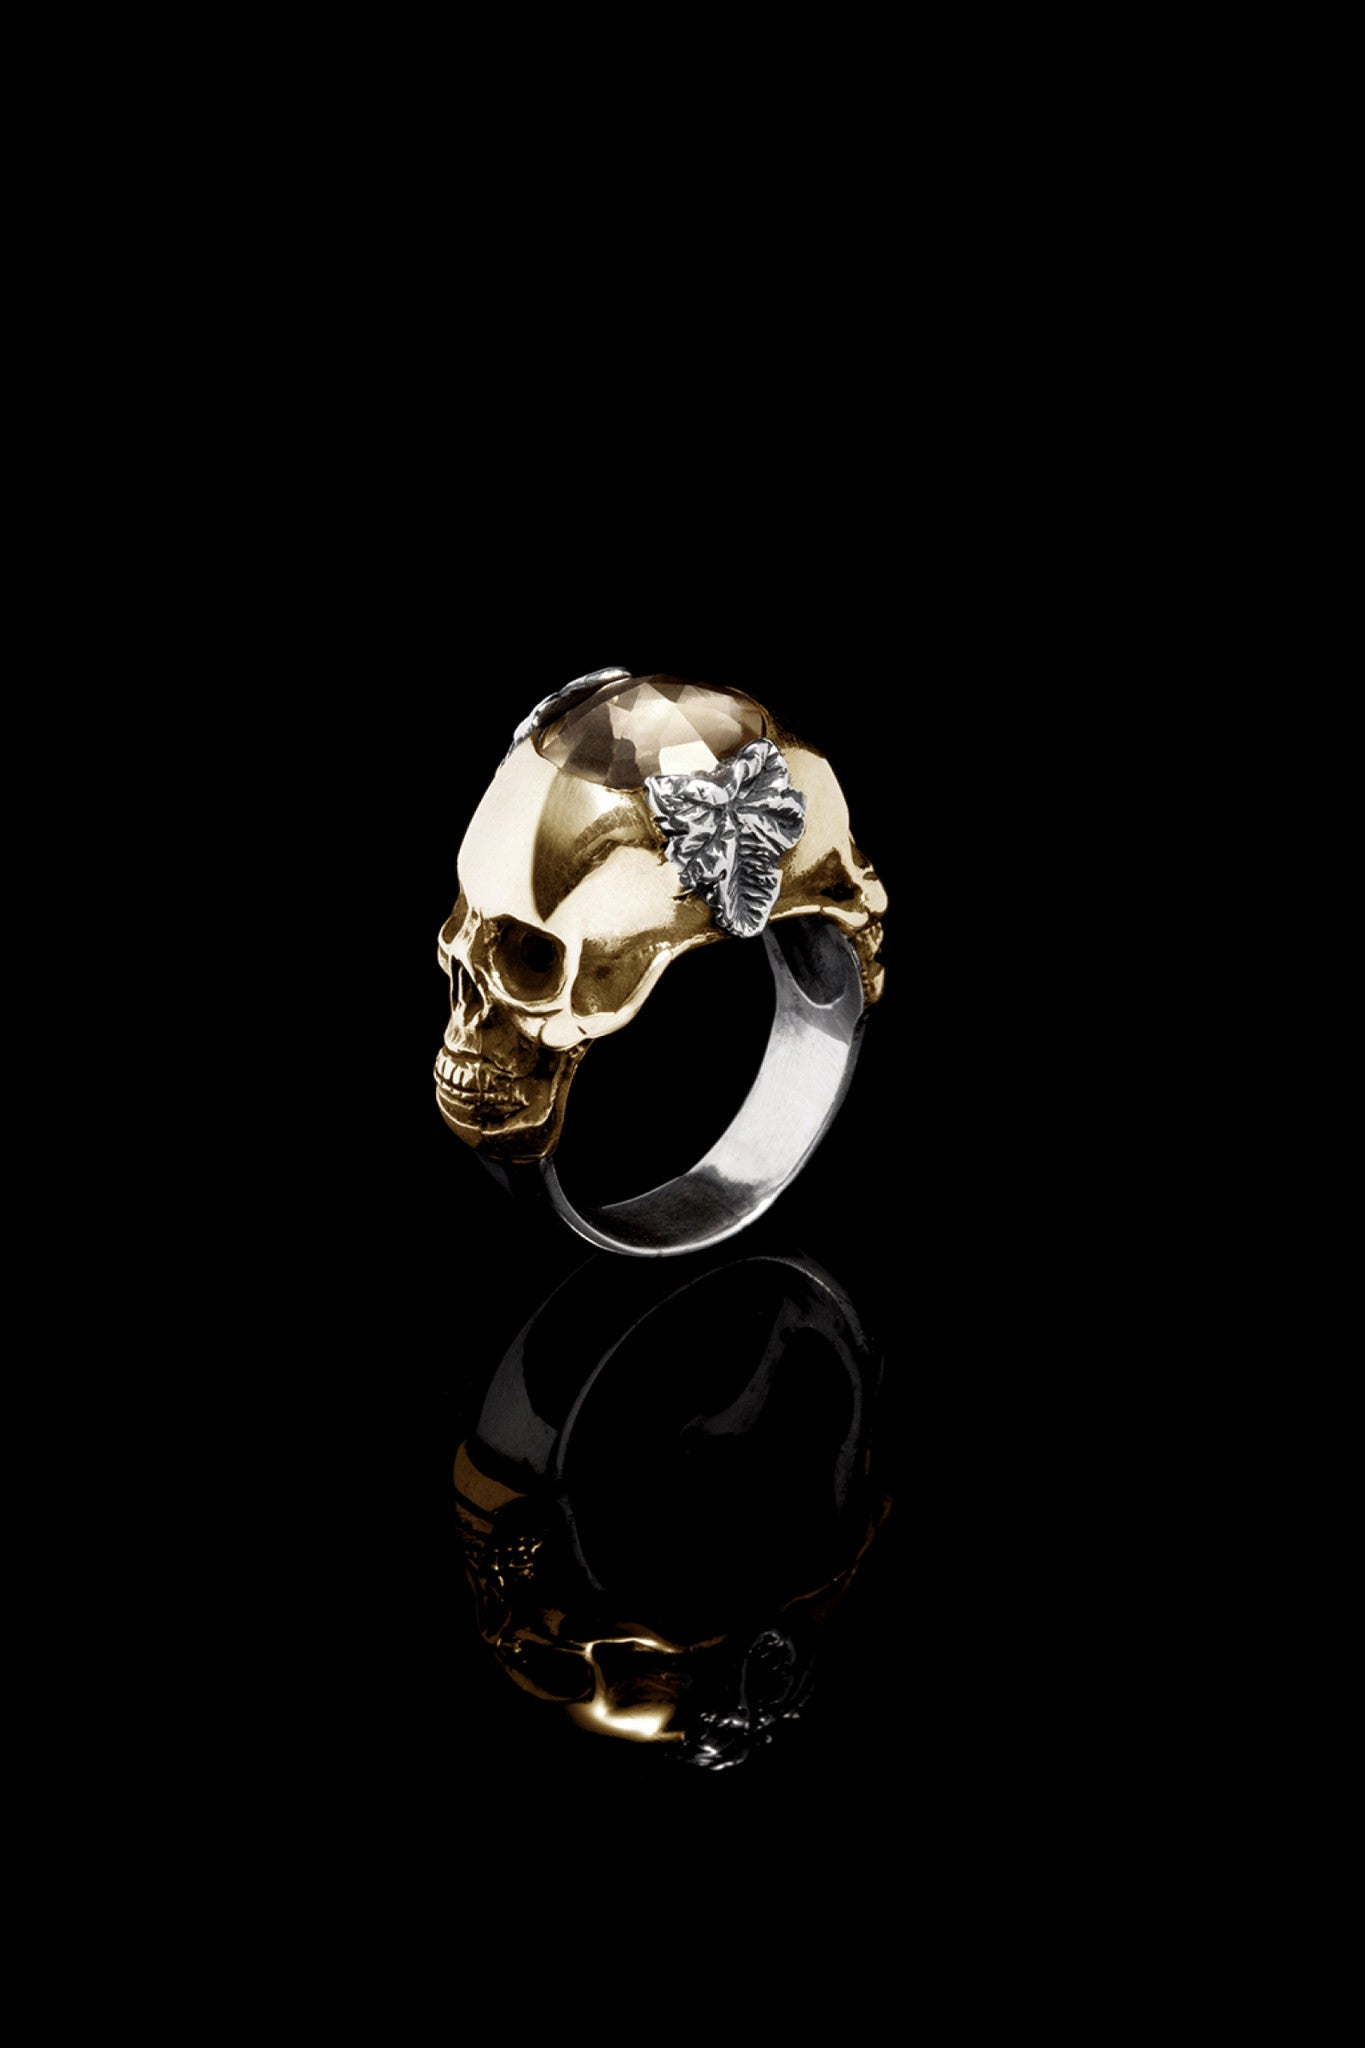 Ugo Cacciatori, Gold, Jewelry, 9kt Gold + Sterling Silver, Ring, Smoky Quartz, Smoky Quartz and Black Diamonds, Smoky Quartz and Brown Diamonds